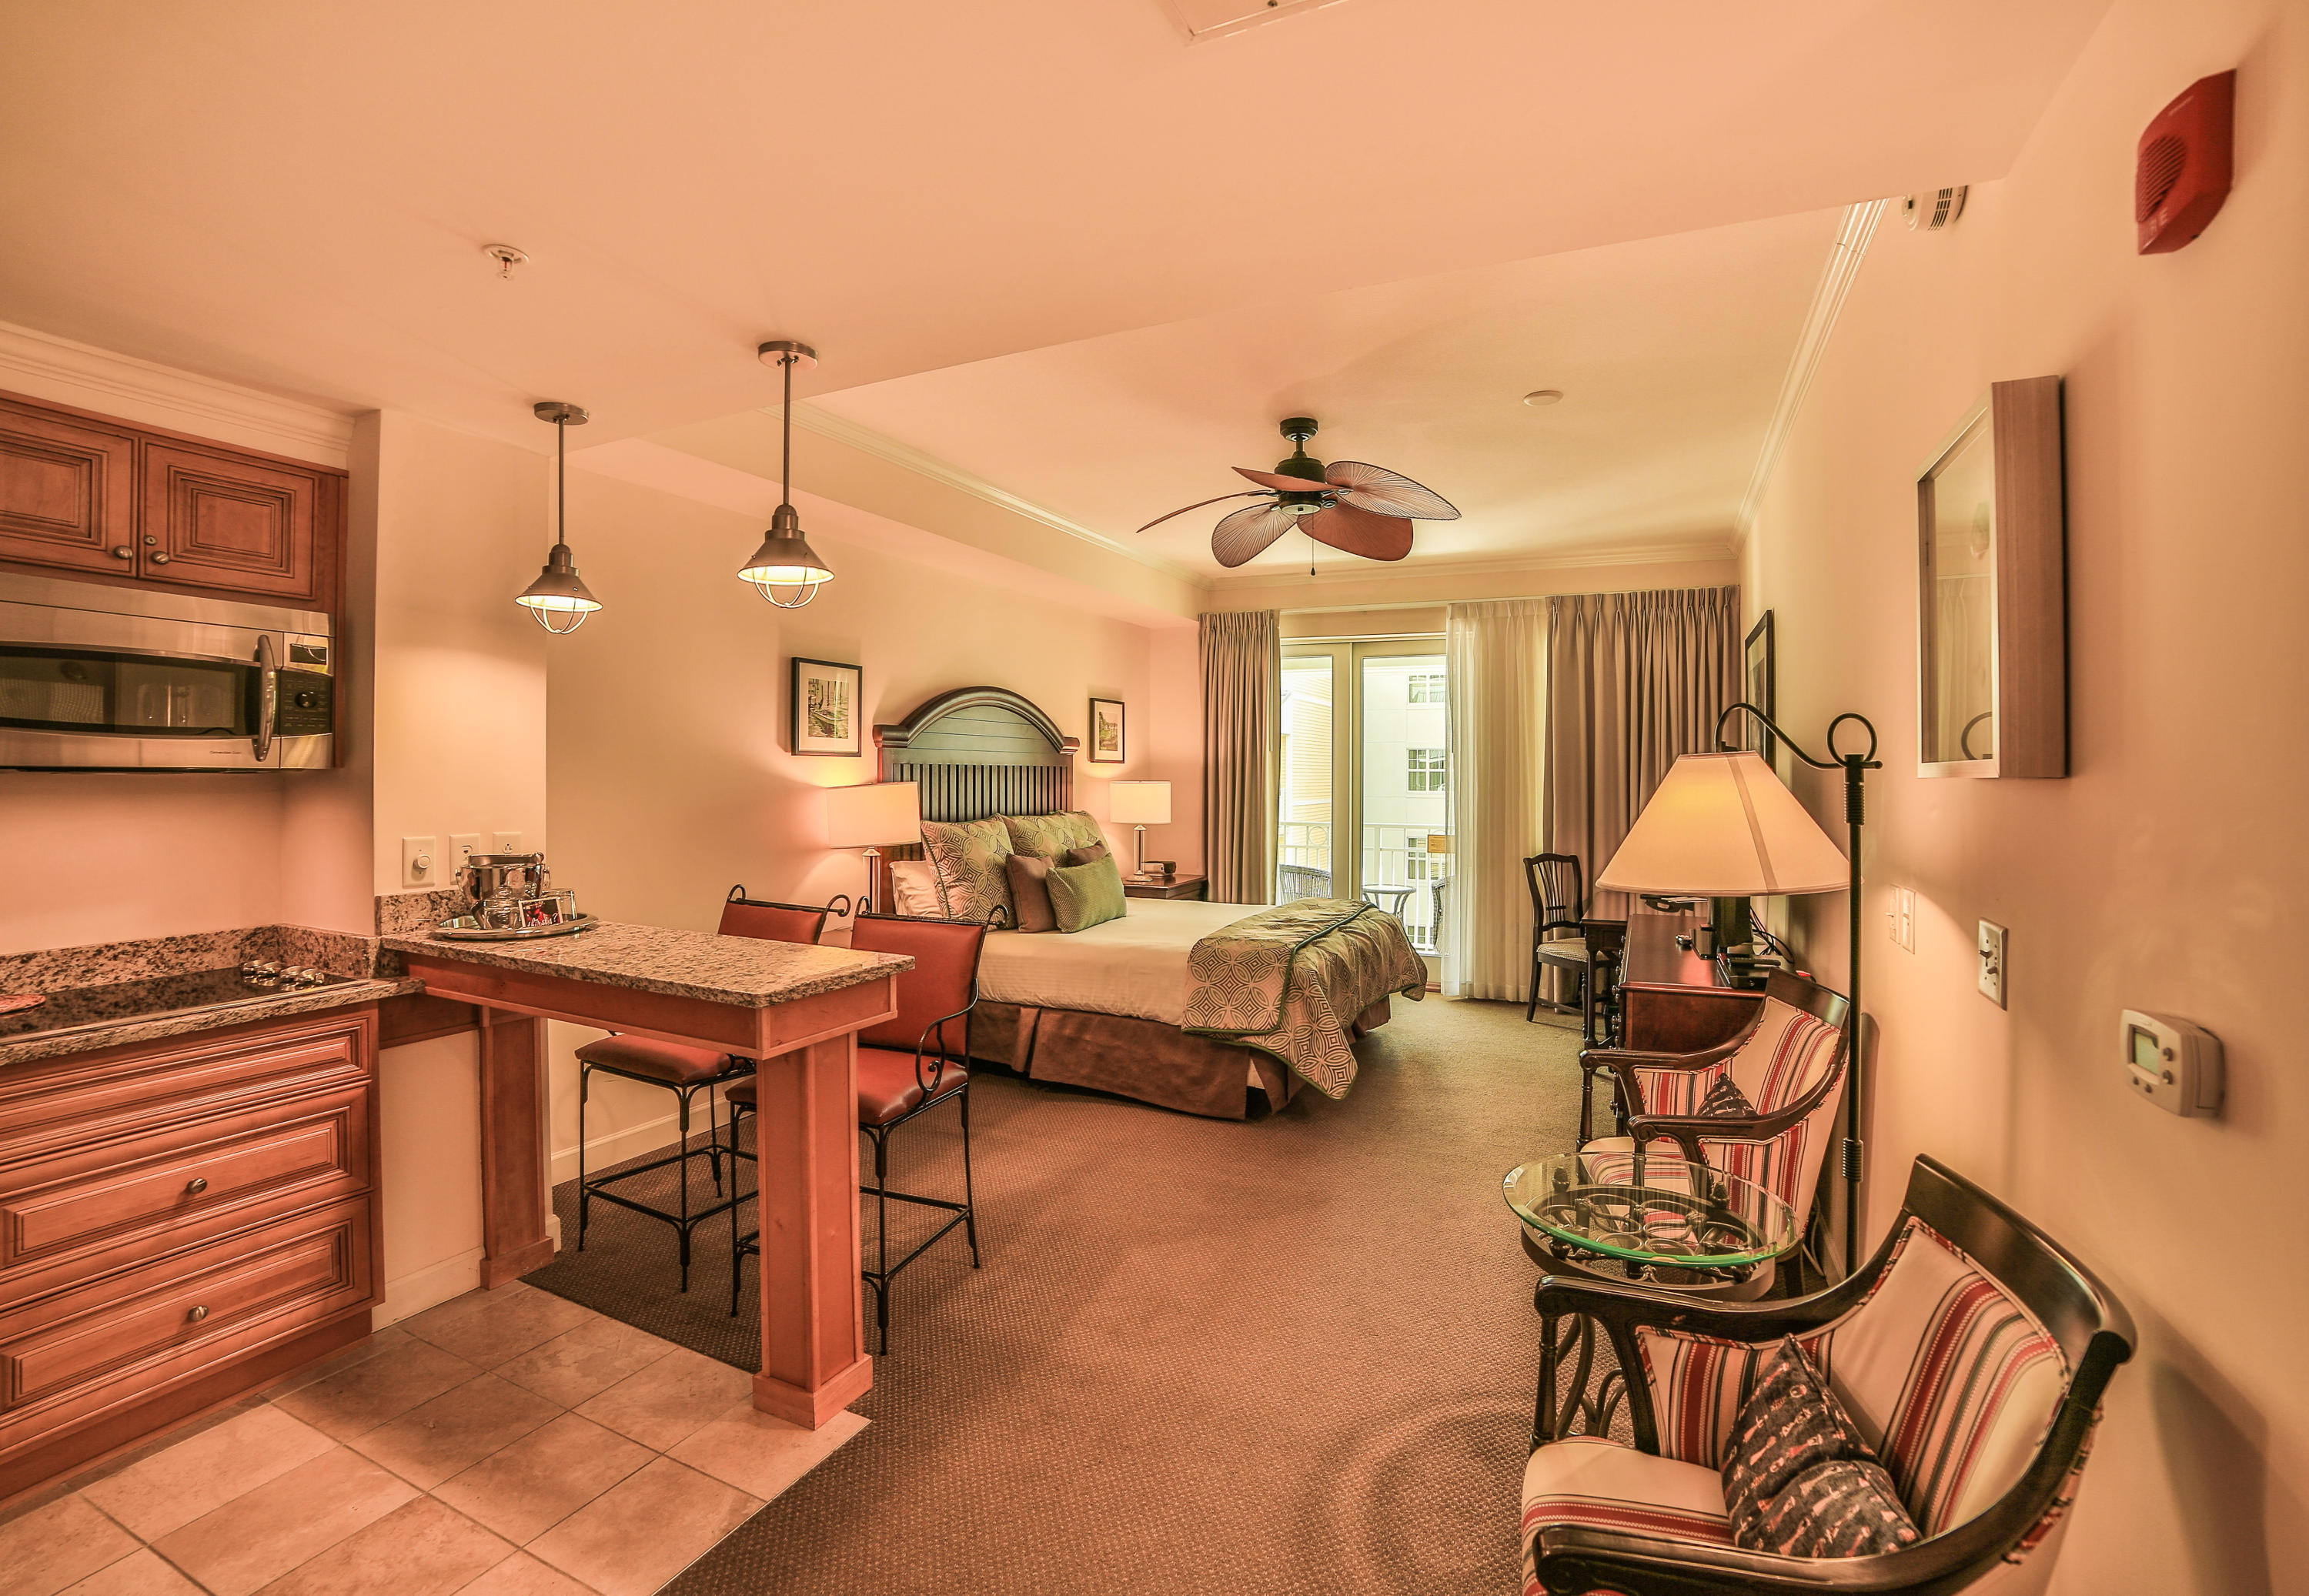 Wild Dunes Homes For Sale - A-408 Village At Wild Dunes, Isle of Palms, SC - 4